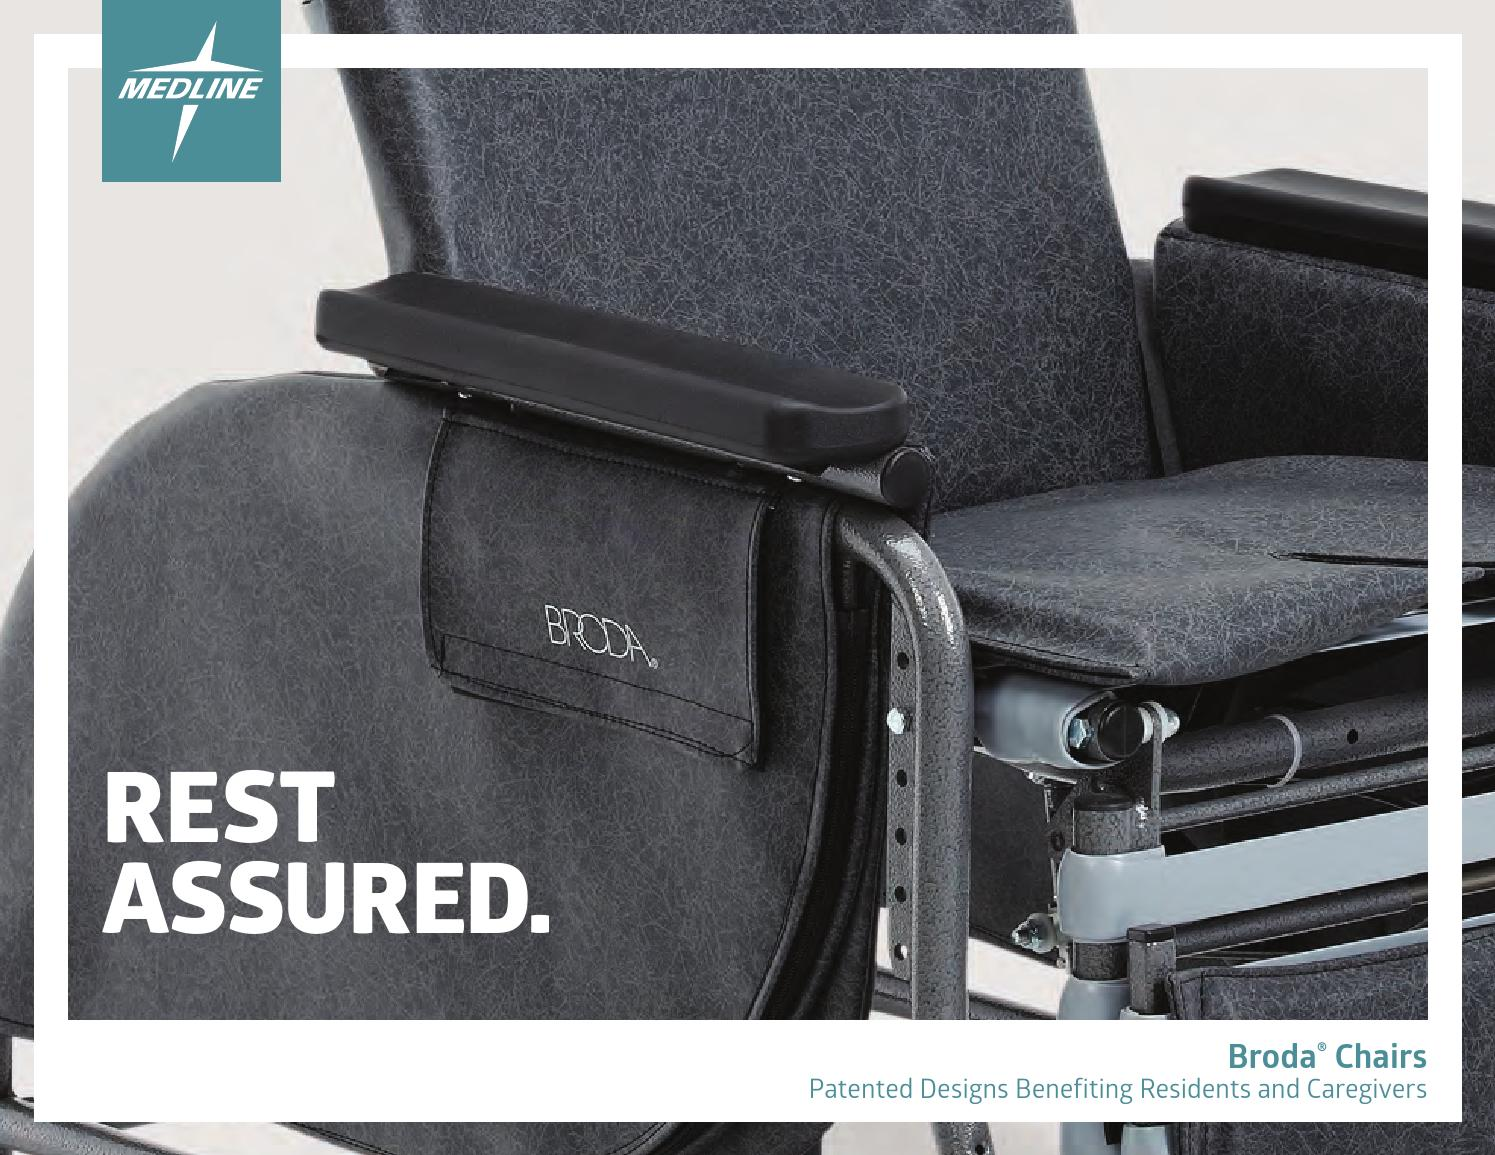 broda chair metal folding covers for sale chairs by medline industries issuu